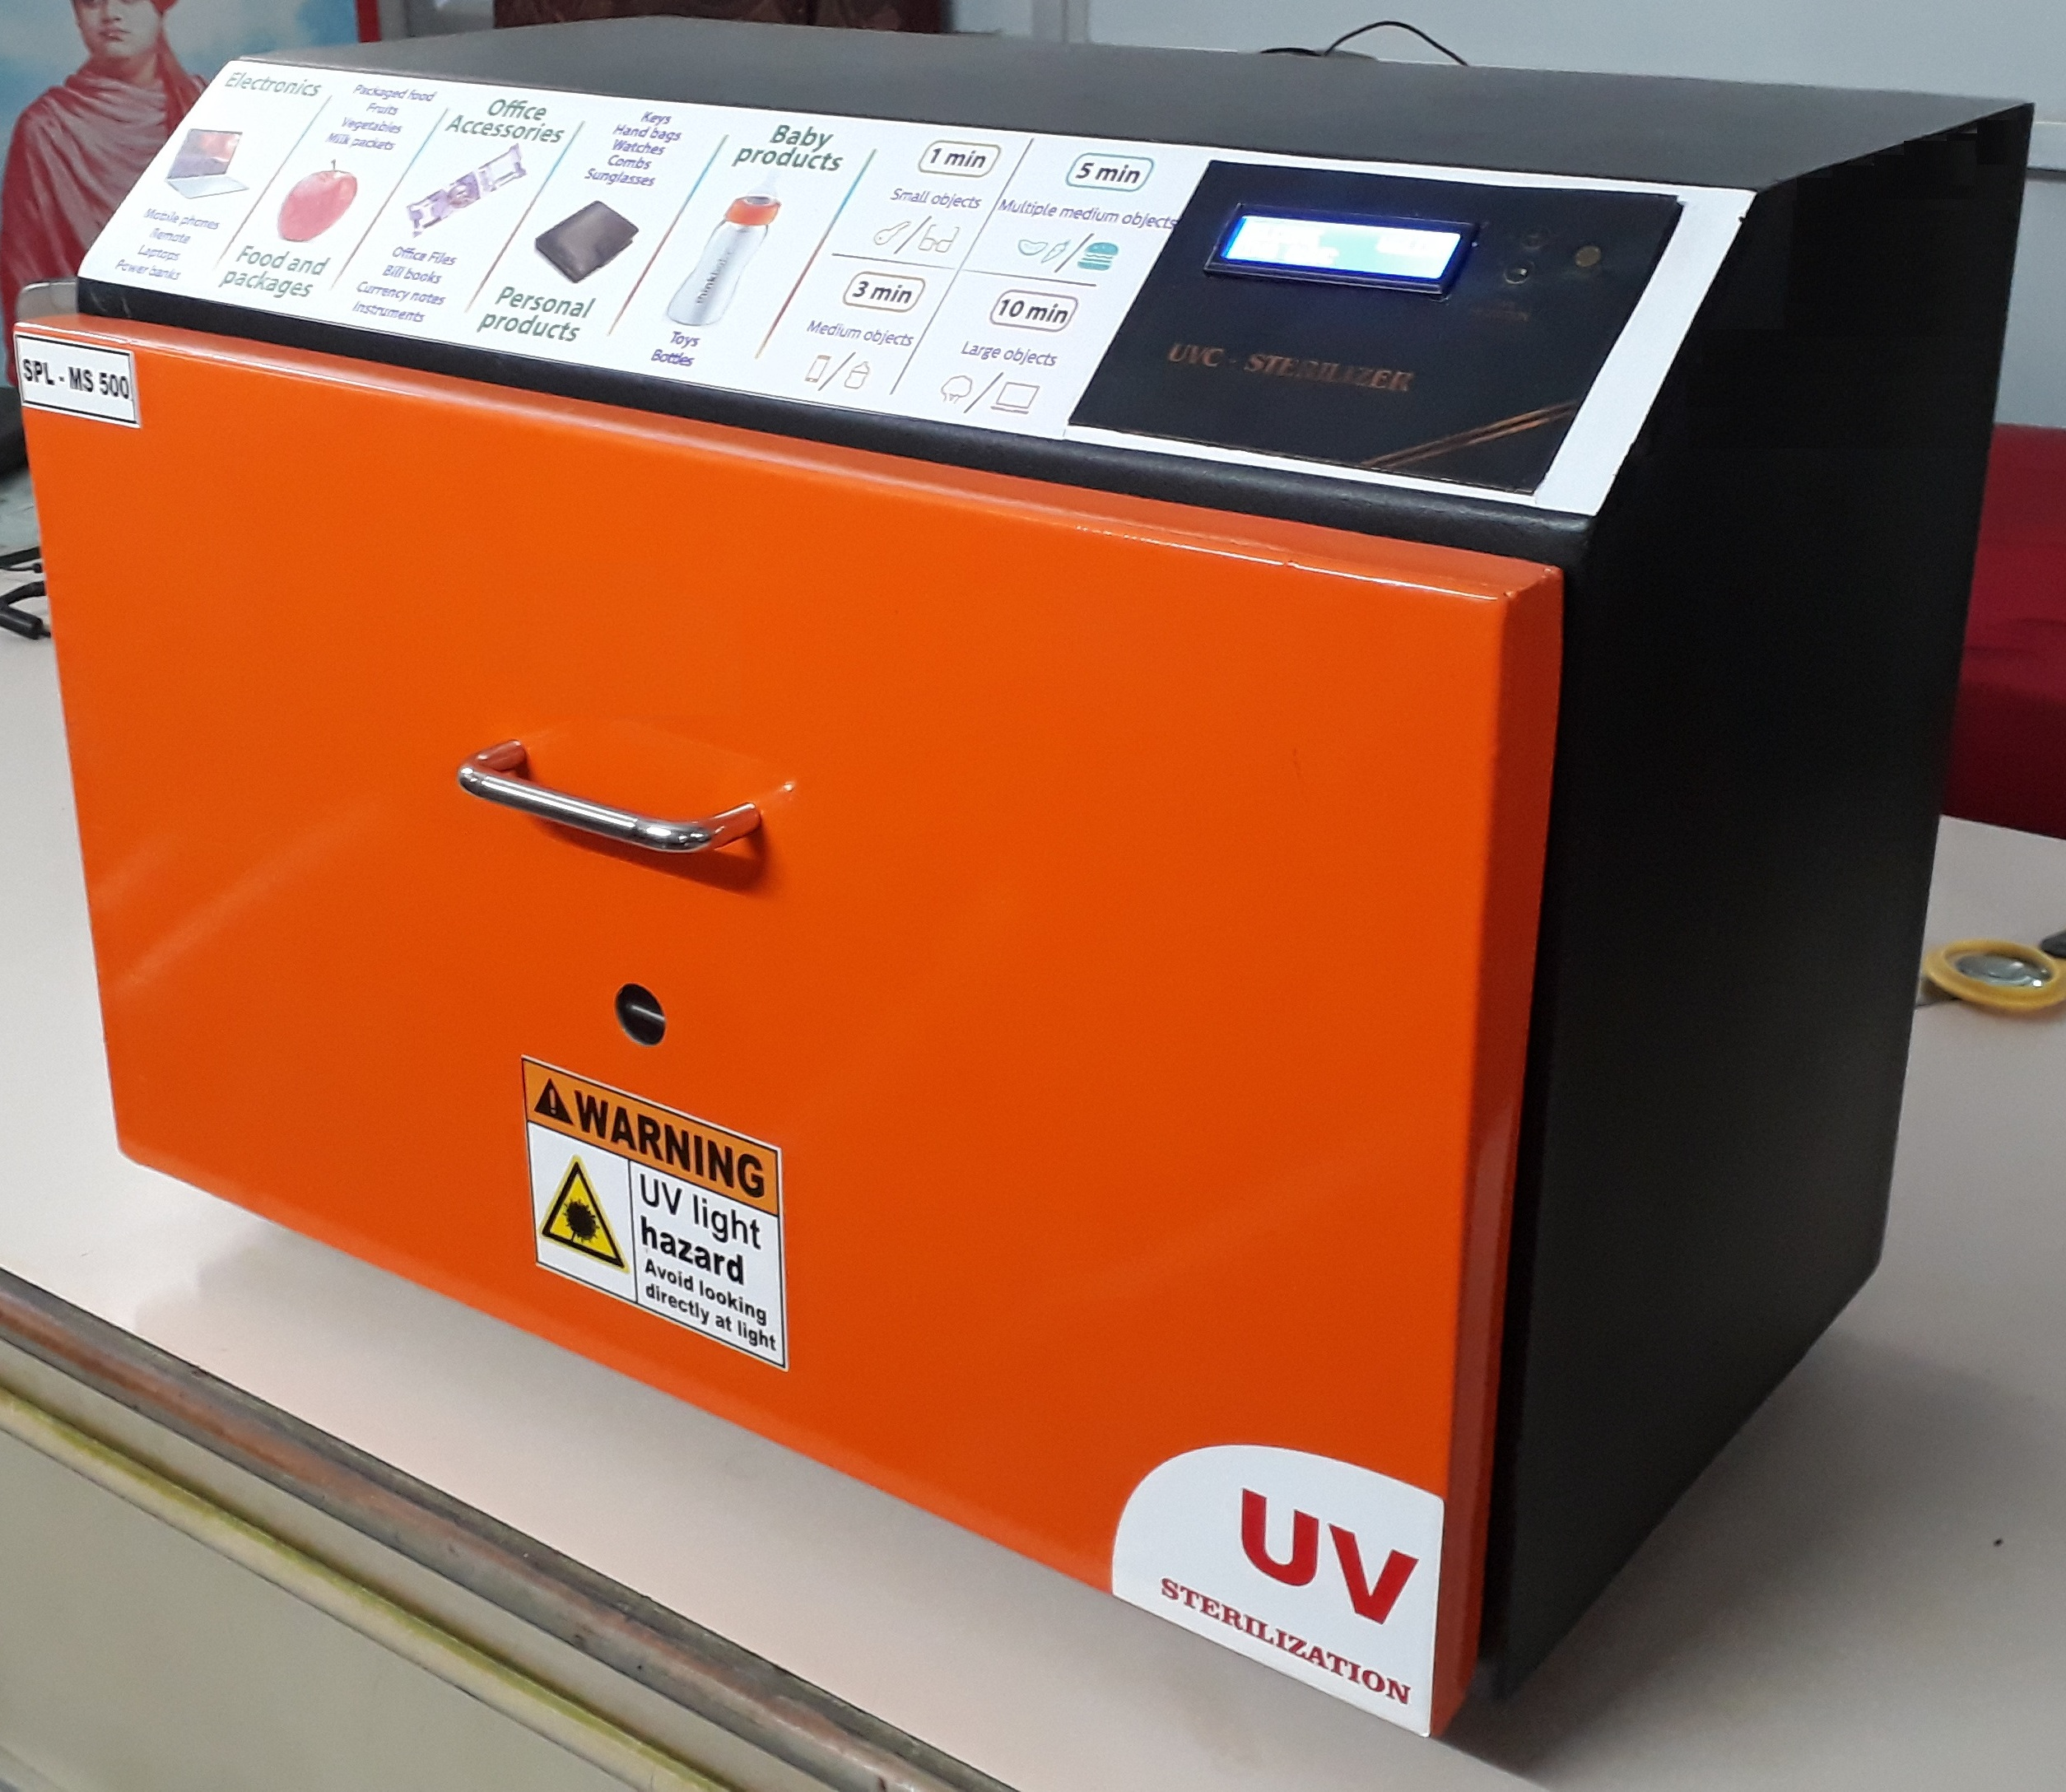 Autoronica, Manufacturers and Suppliers of Automatic UV Sterilizer Chamber in Jammu, Manufacturers of Automatic UV Sterilizer Chamber in Jammu, Dealers of Automatic UV Sterilizer Chamber